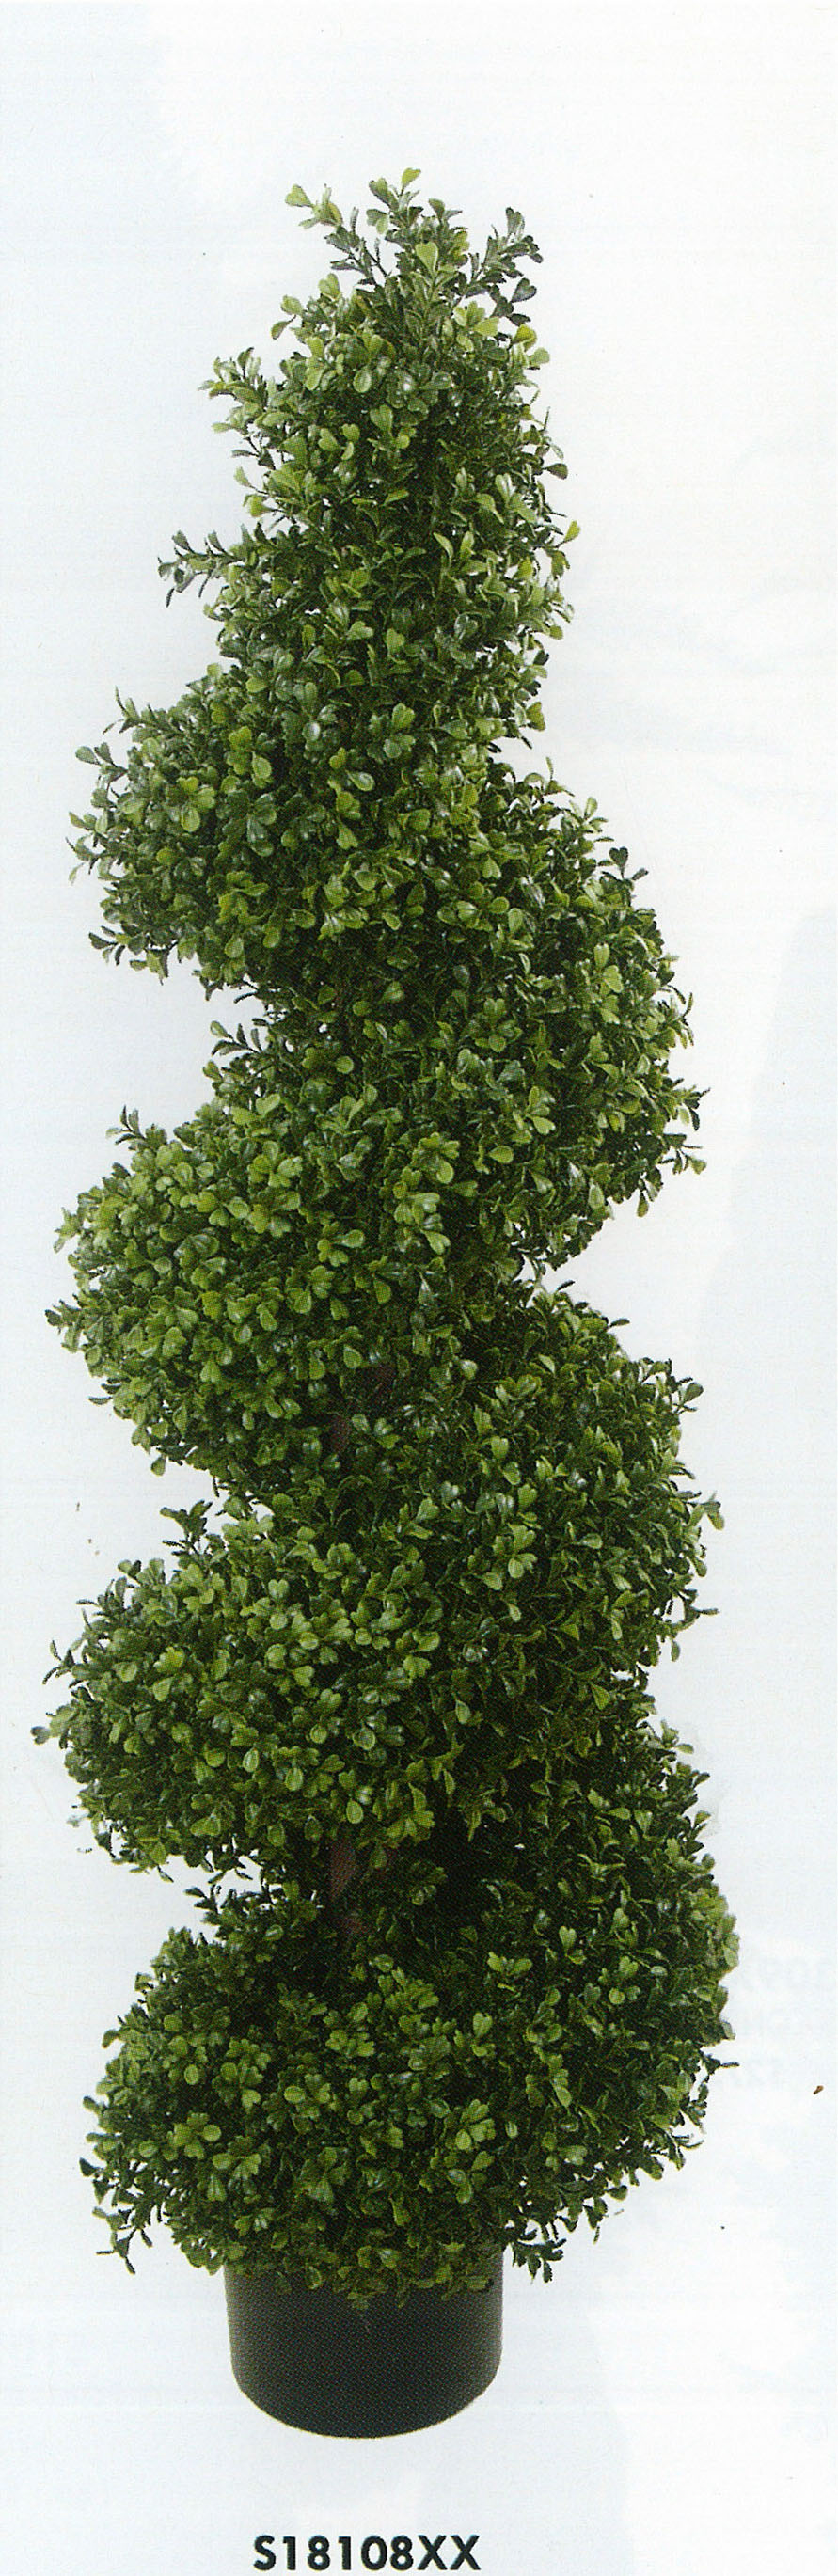 Spiral Boxwood hedge